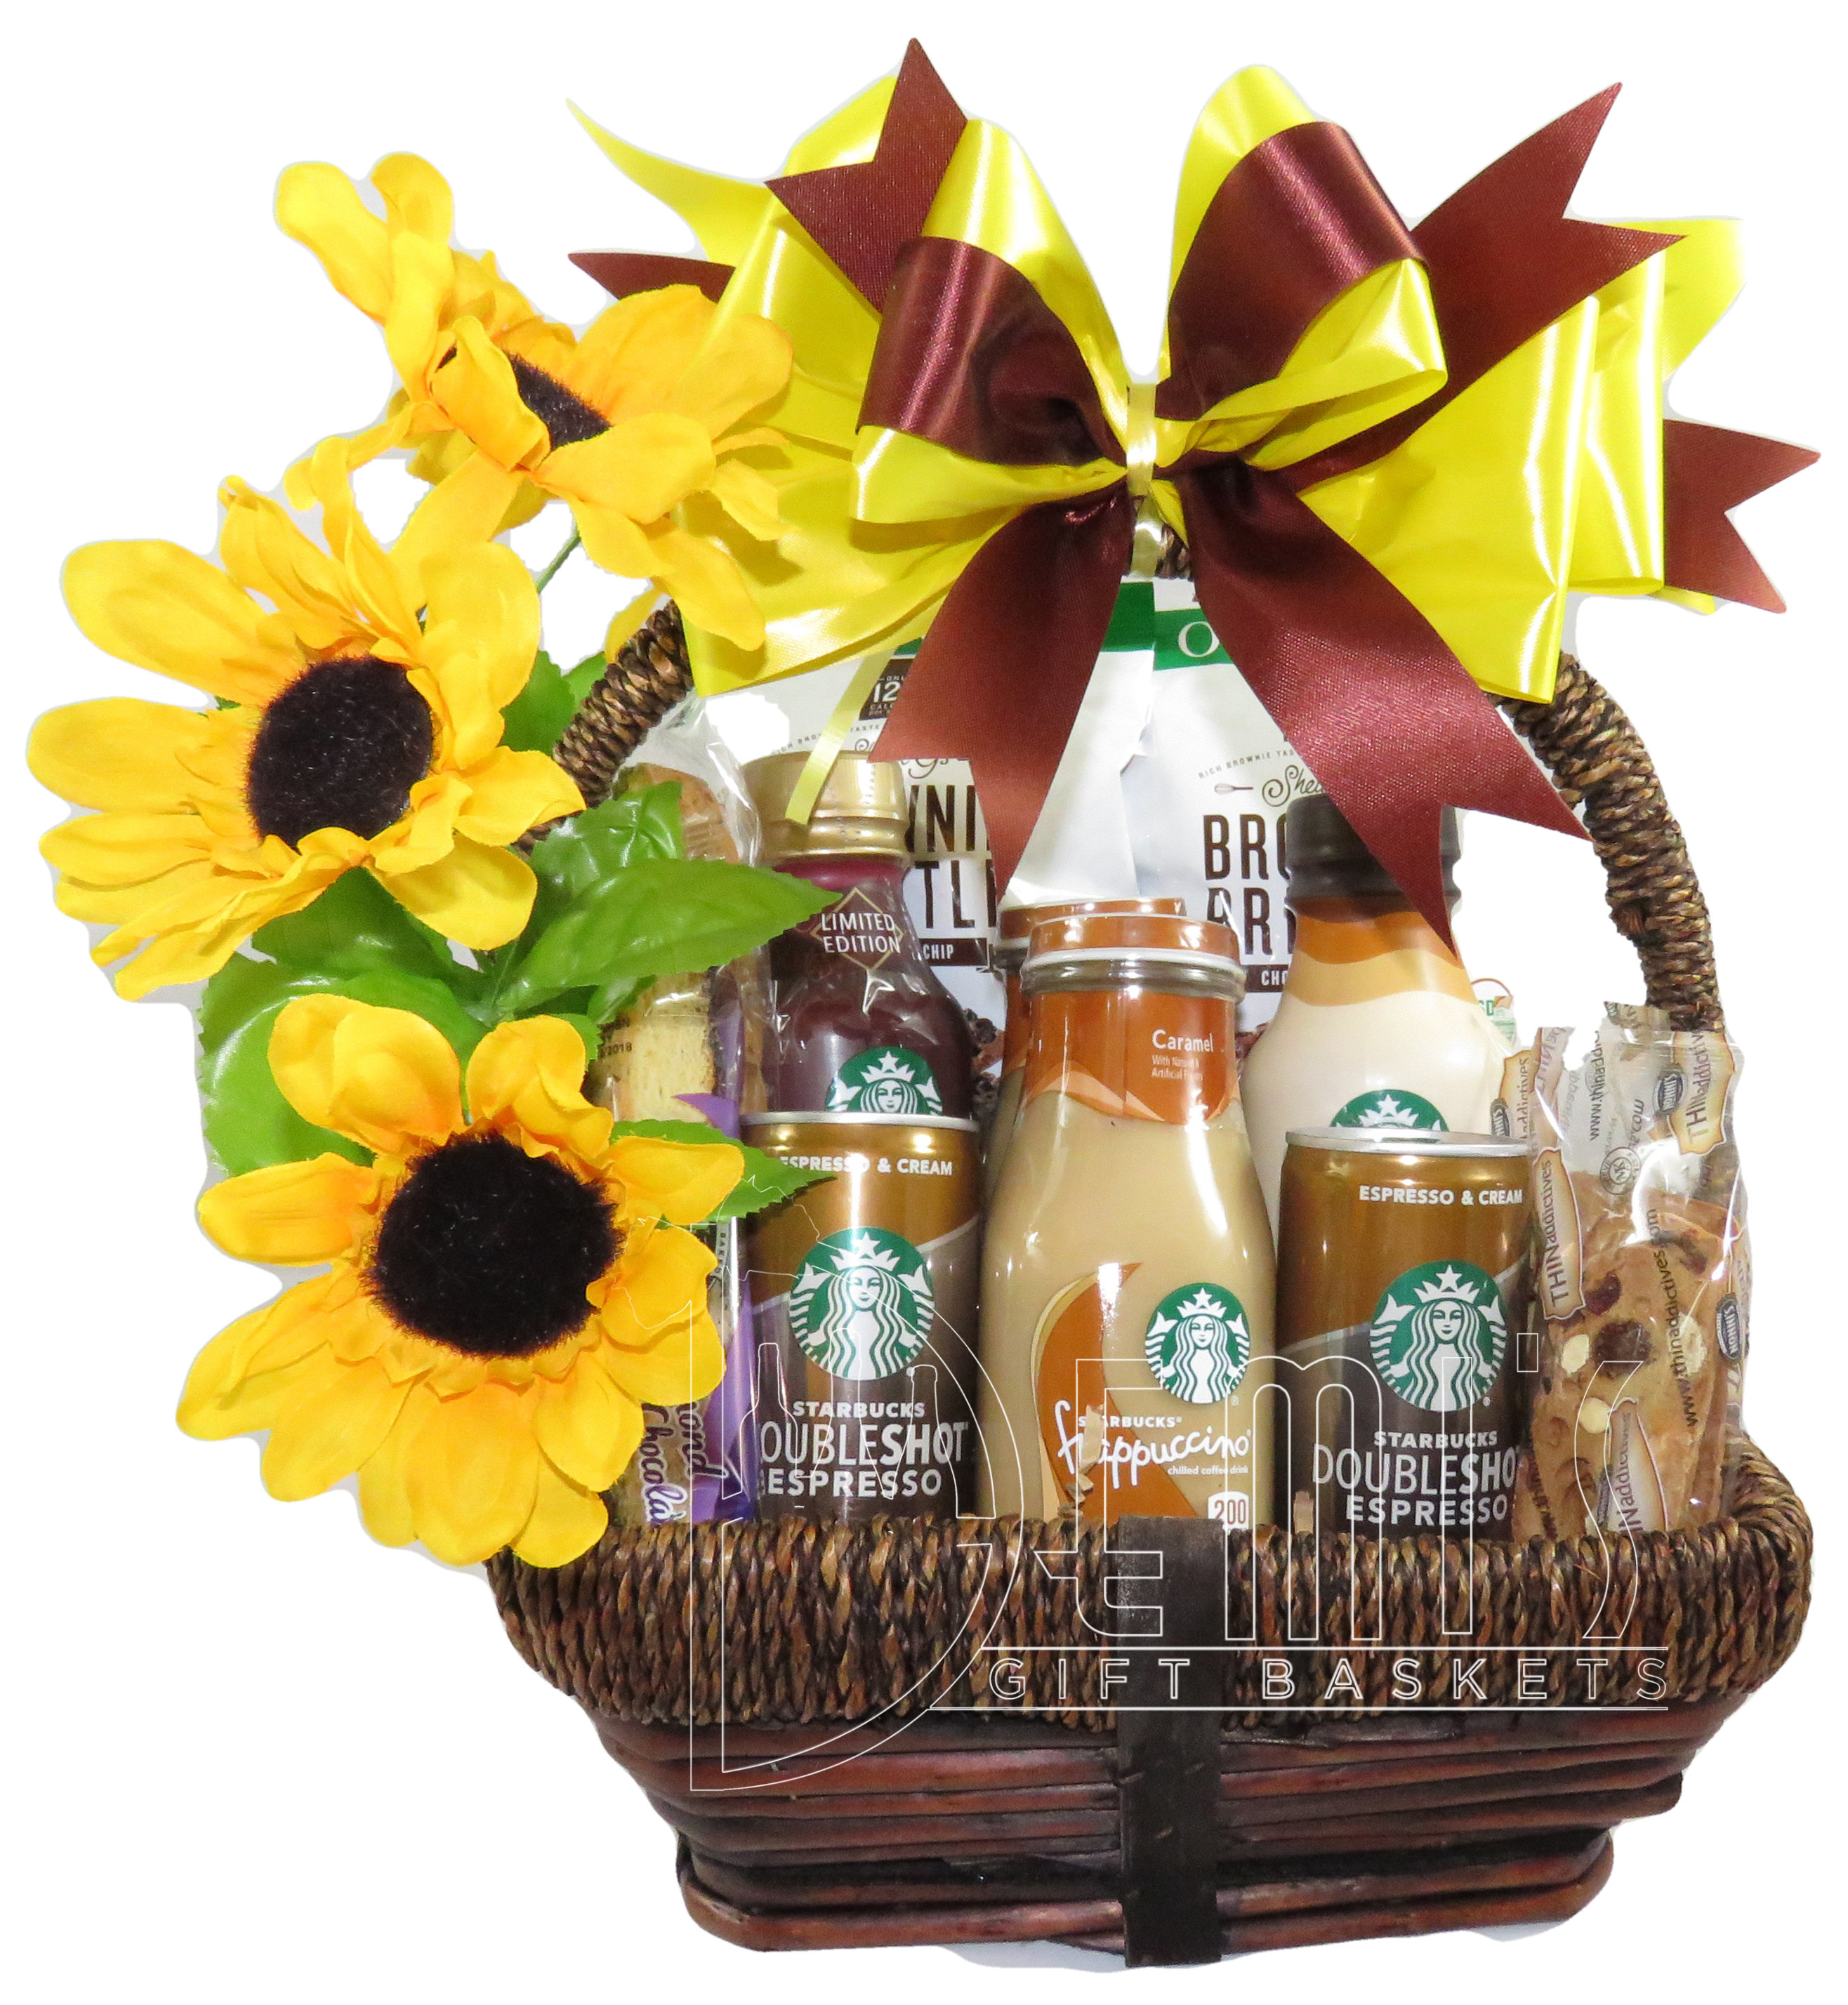 Starbucks Coffee Snack Gift Basket for Two CSS-0052